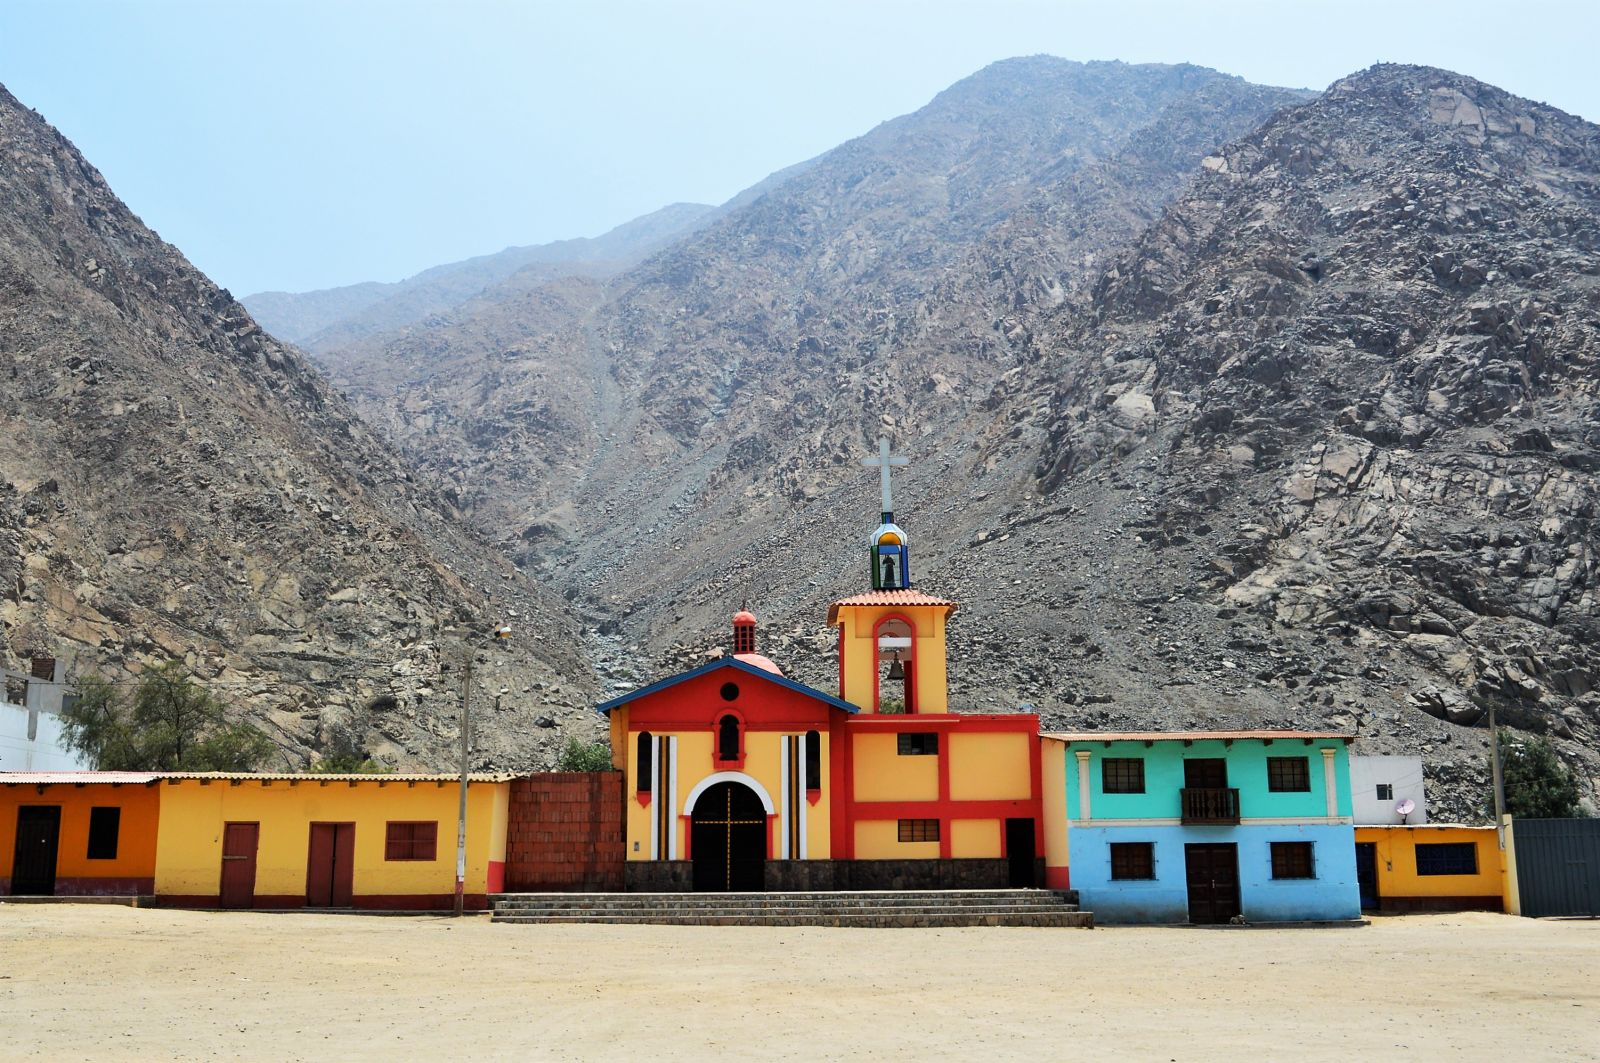 Small colorful villages are shining in the grey desert